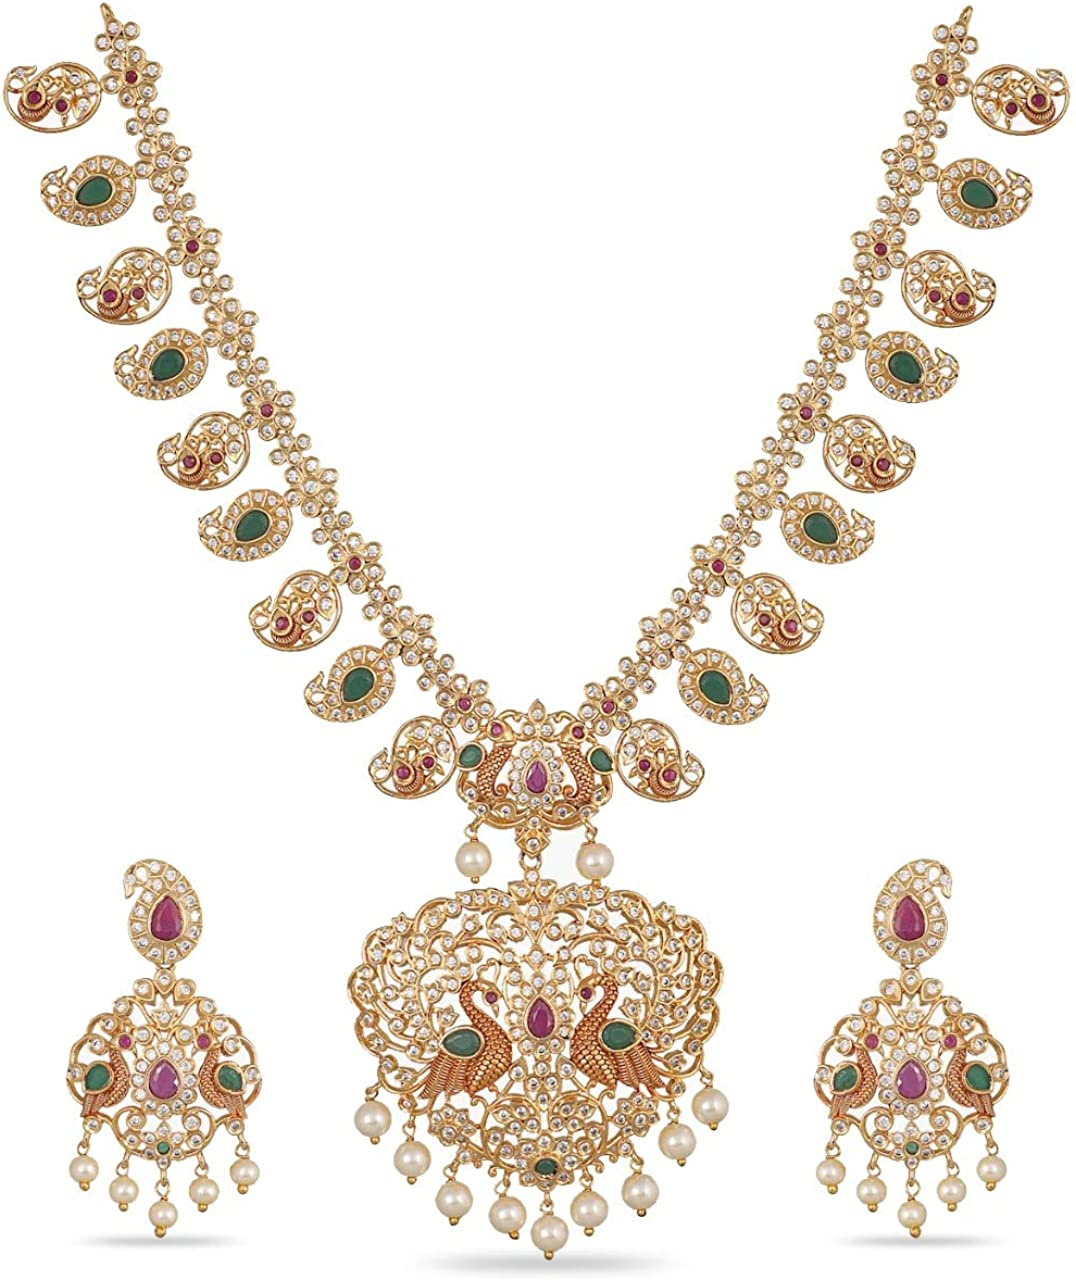 Tarinika Antique Panchi Gold Plated Indian Jewelry Set with Necklace and Earrings - White Red Green